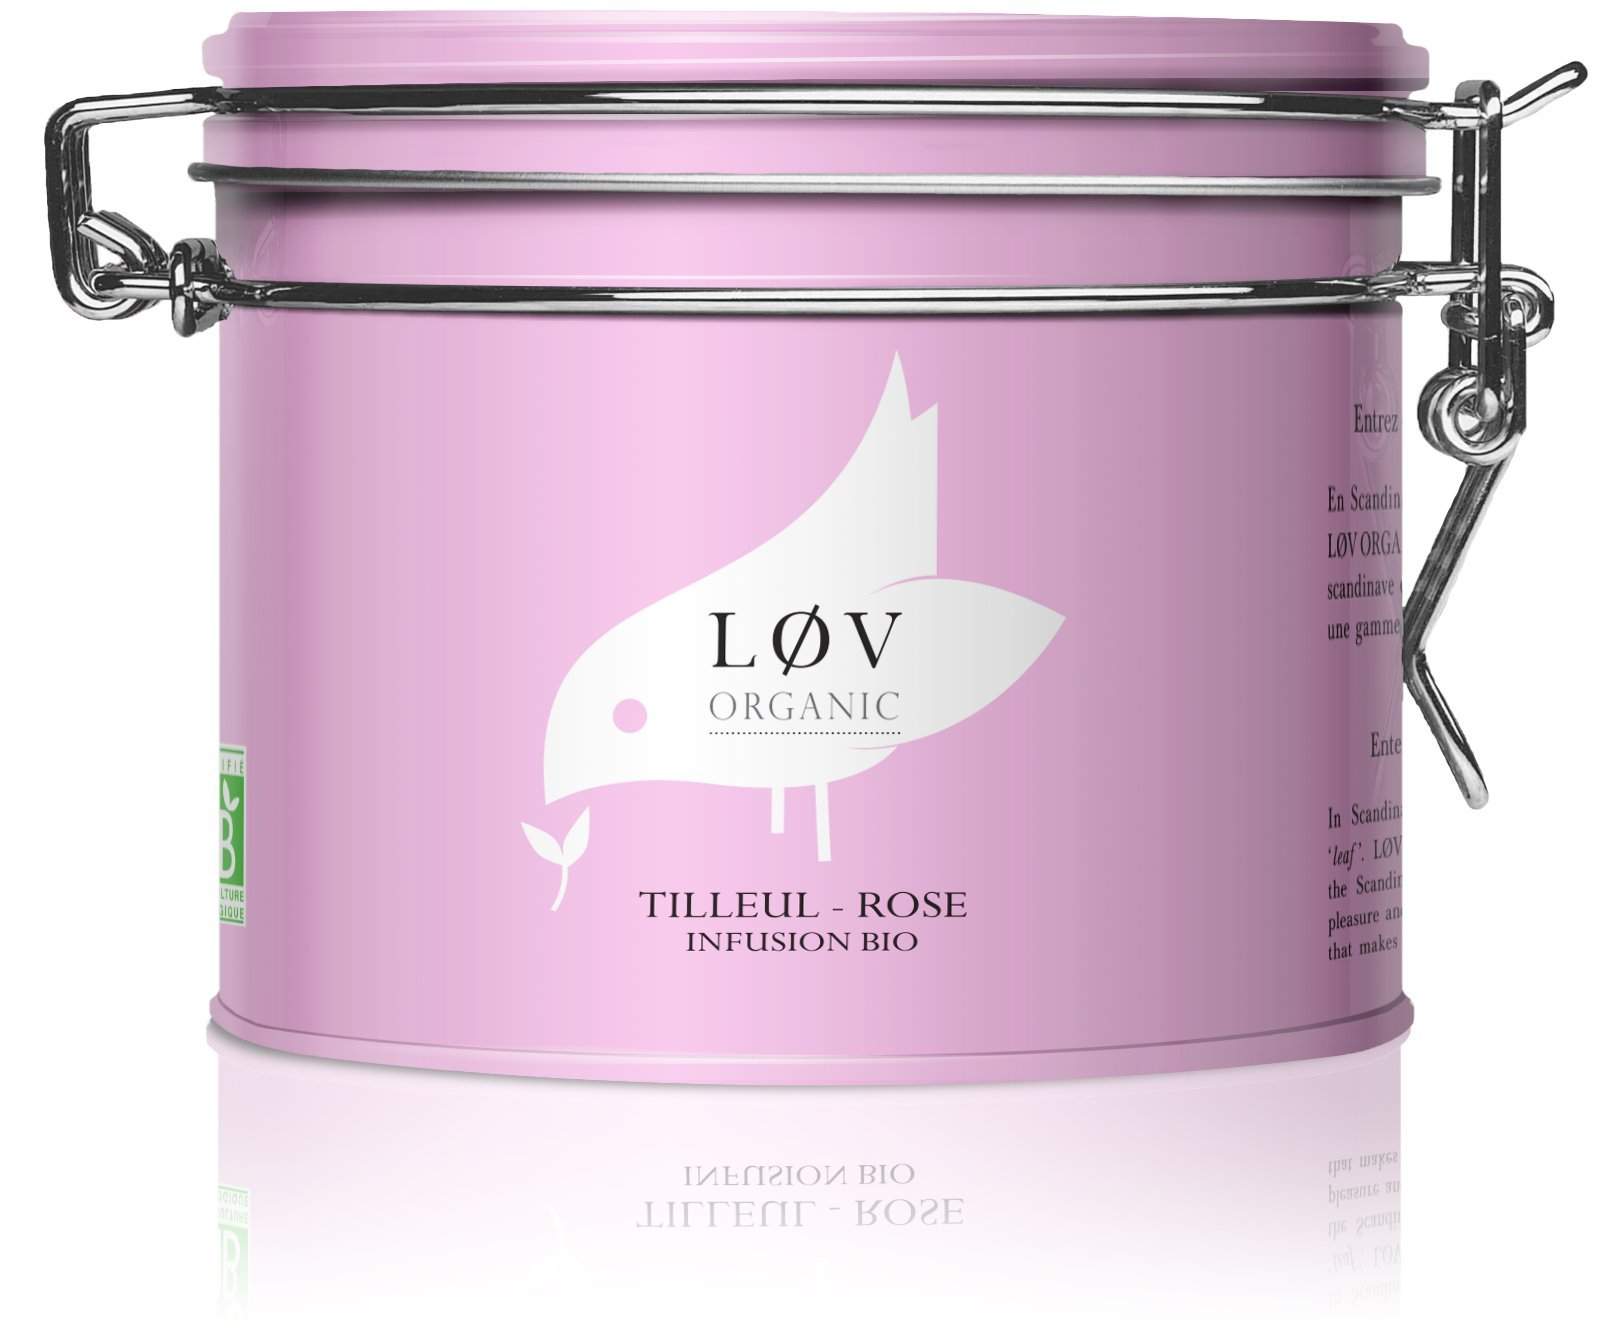 Lv-Organic-Tea-LINDEN-ROSE